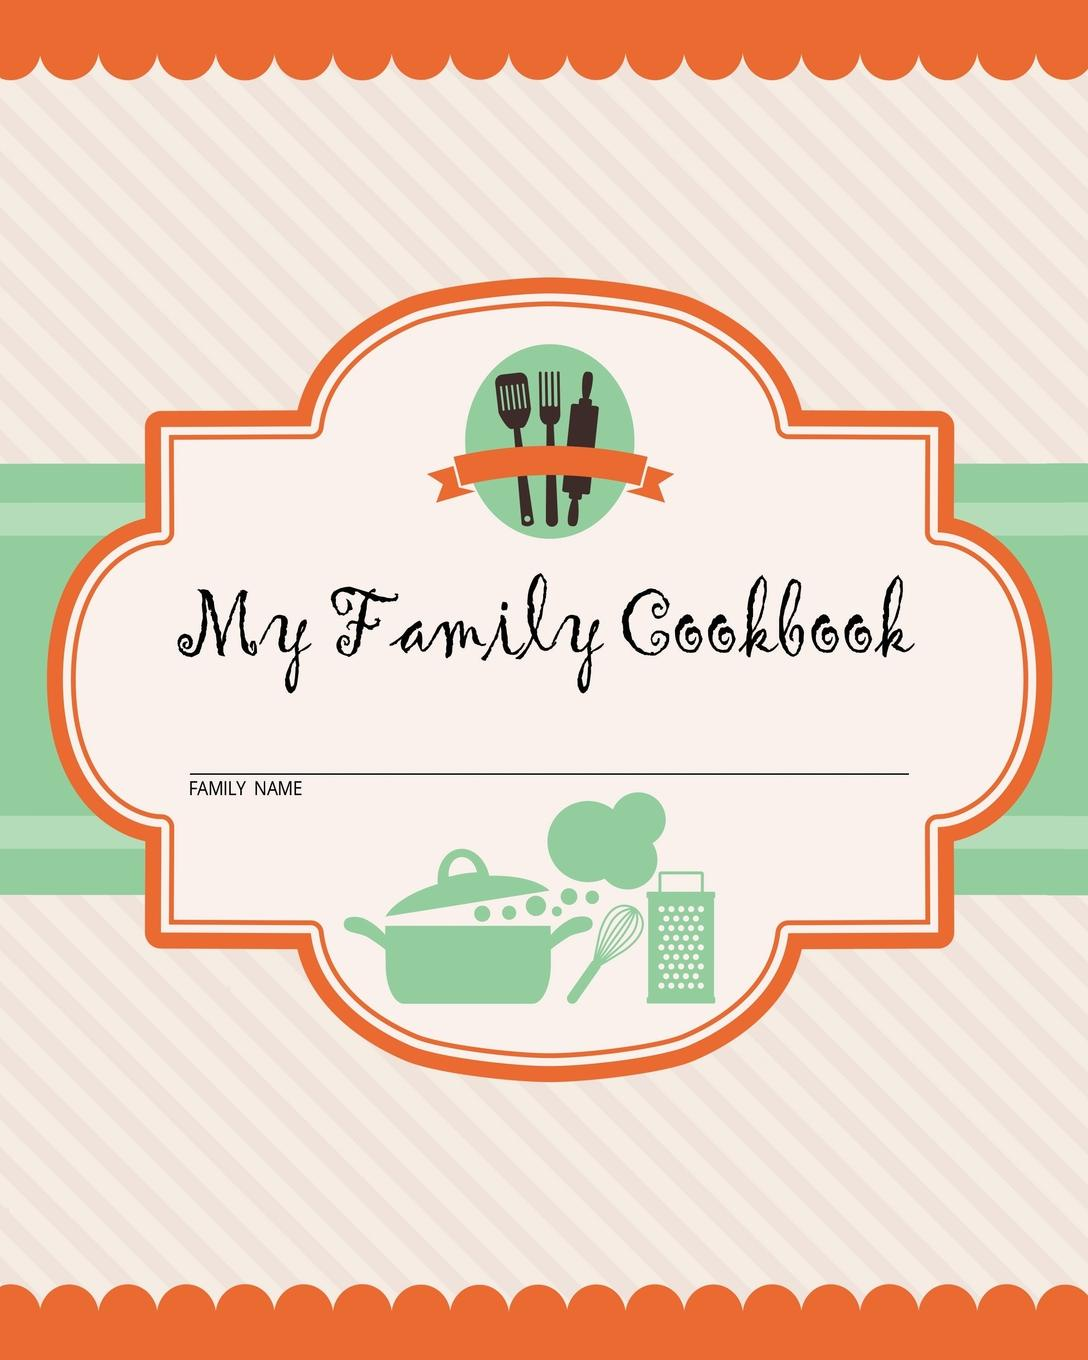 My Family Cookbook. 100 Recipe Pages - Write Your Own Family Recipe Book Using This Blank Recipe Journal (Includes Conversion Tables, Quotes and Table of Recipes) .8 x 10 Inches. journal jungle publishing my recipe book 100 recipe pages conversion tables quotes and more make your own cookbook using this blank recipe book 8 x 10 inches pink purple and orange